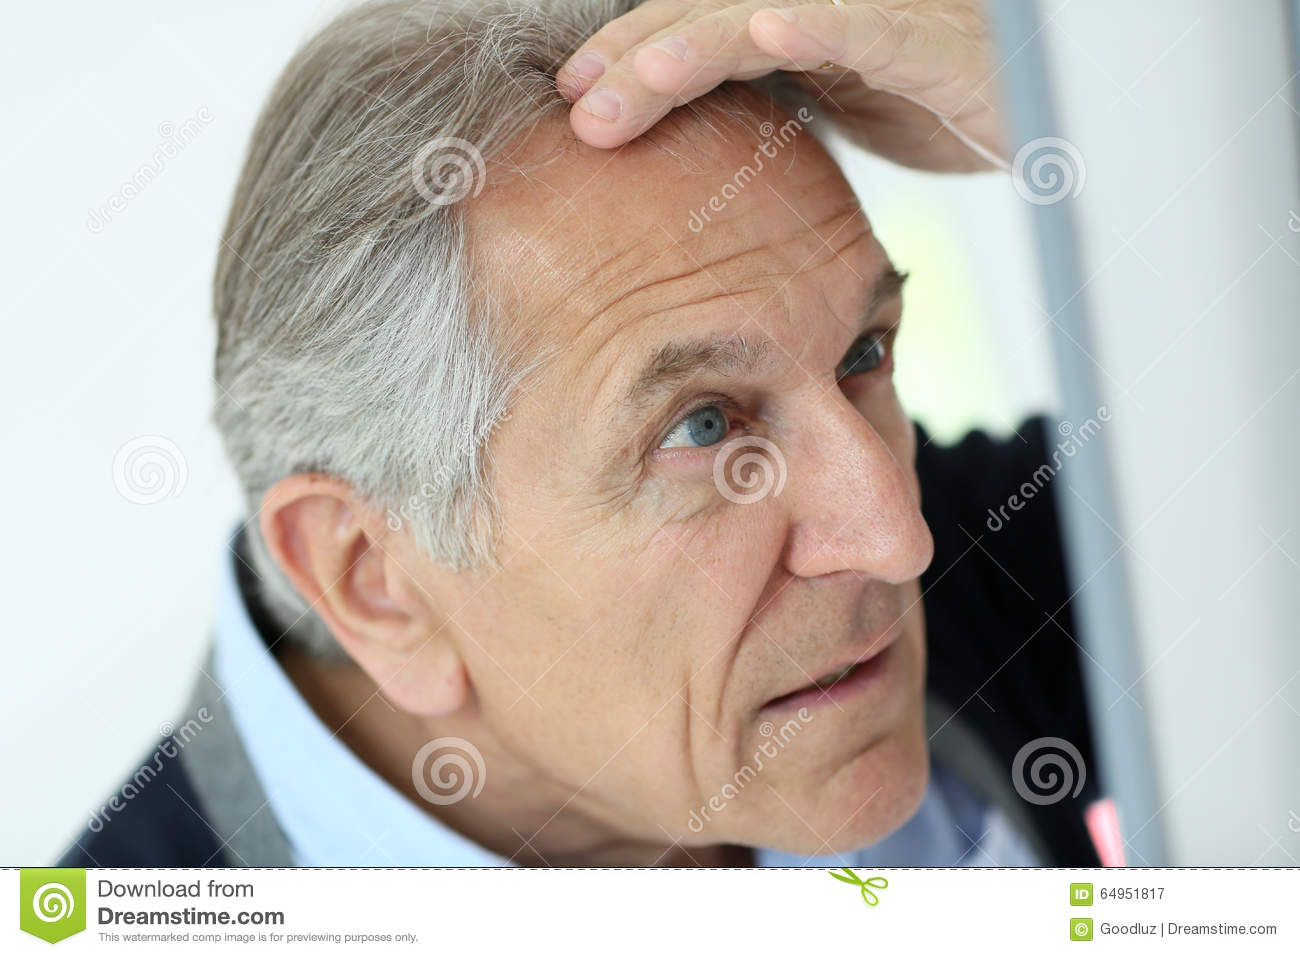 Senior man concerned about hair loss